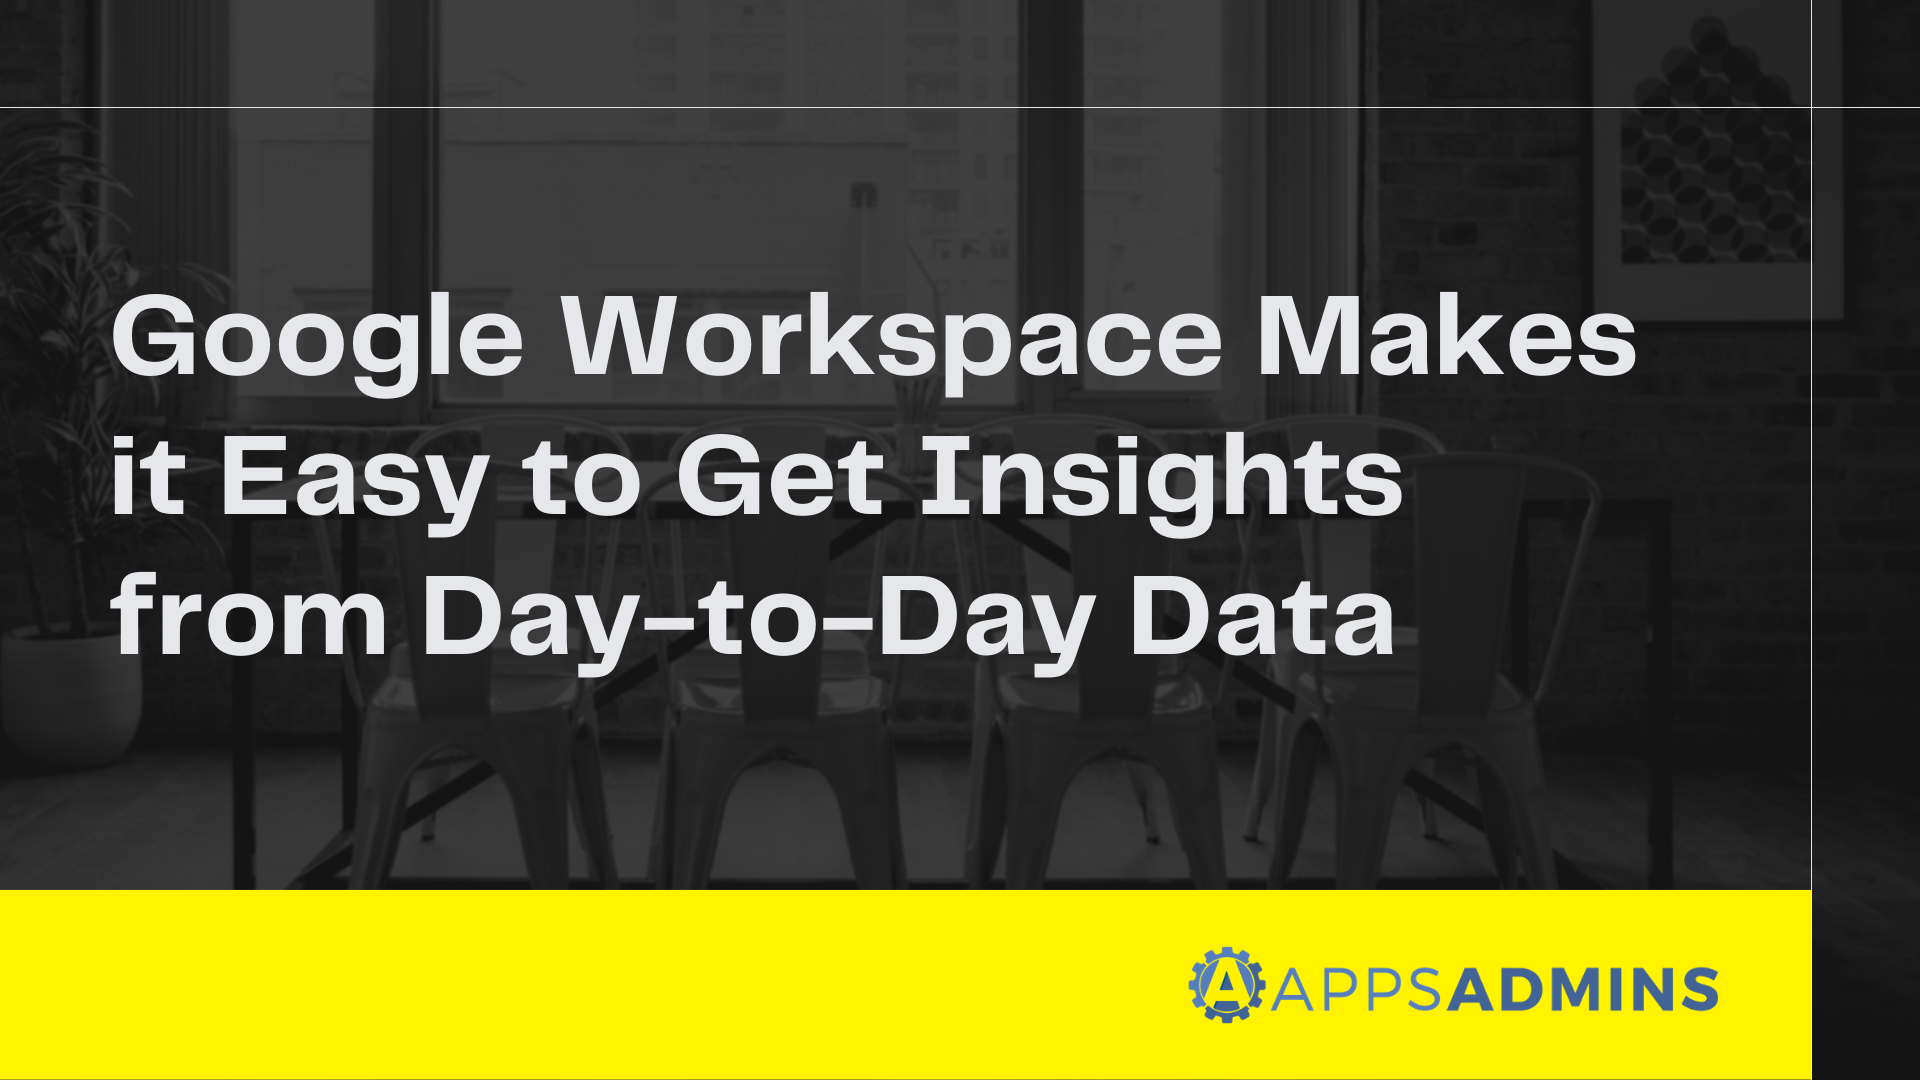 Google Workspace Makes it Easy to Get Insights from Day-to-Day Data